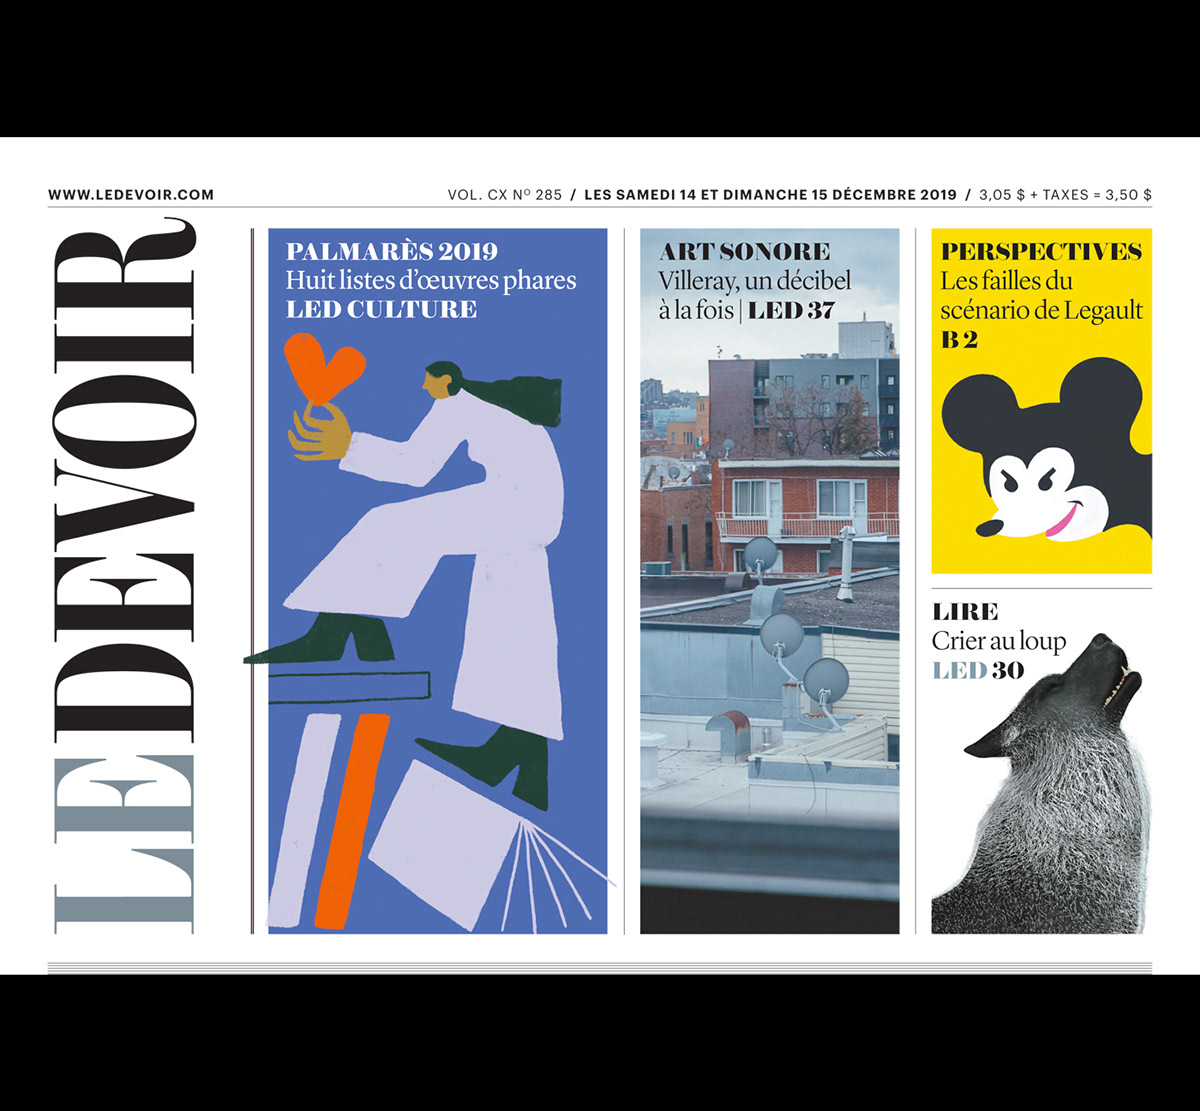 arts and culture Best of culture editorial Holiday ILLUSTRATION  le devoir palmares